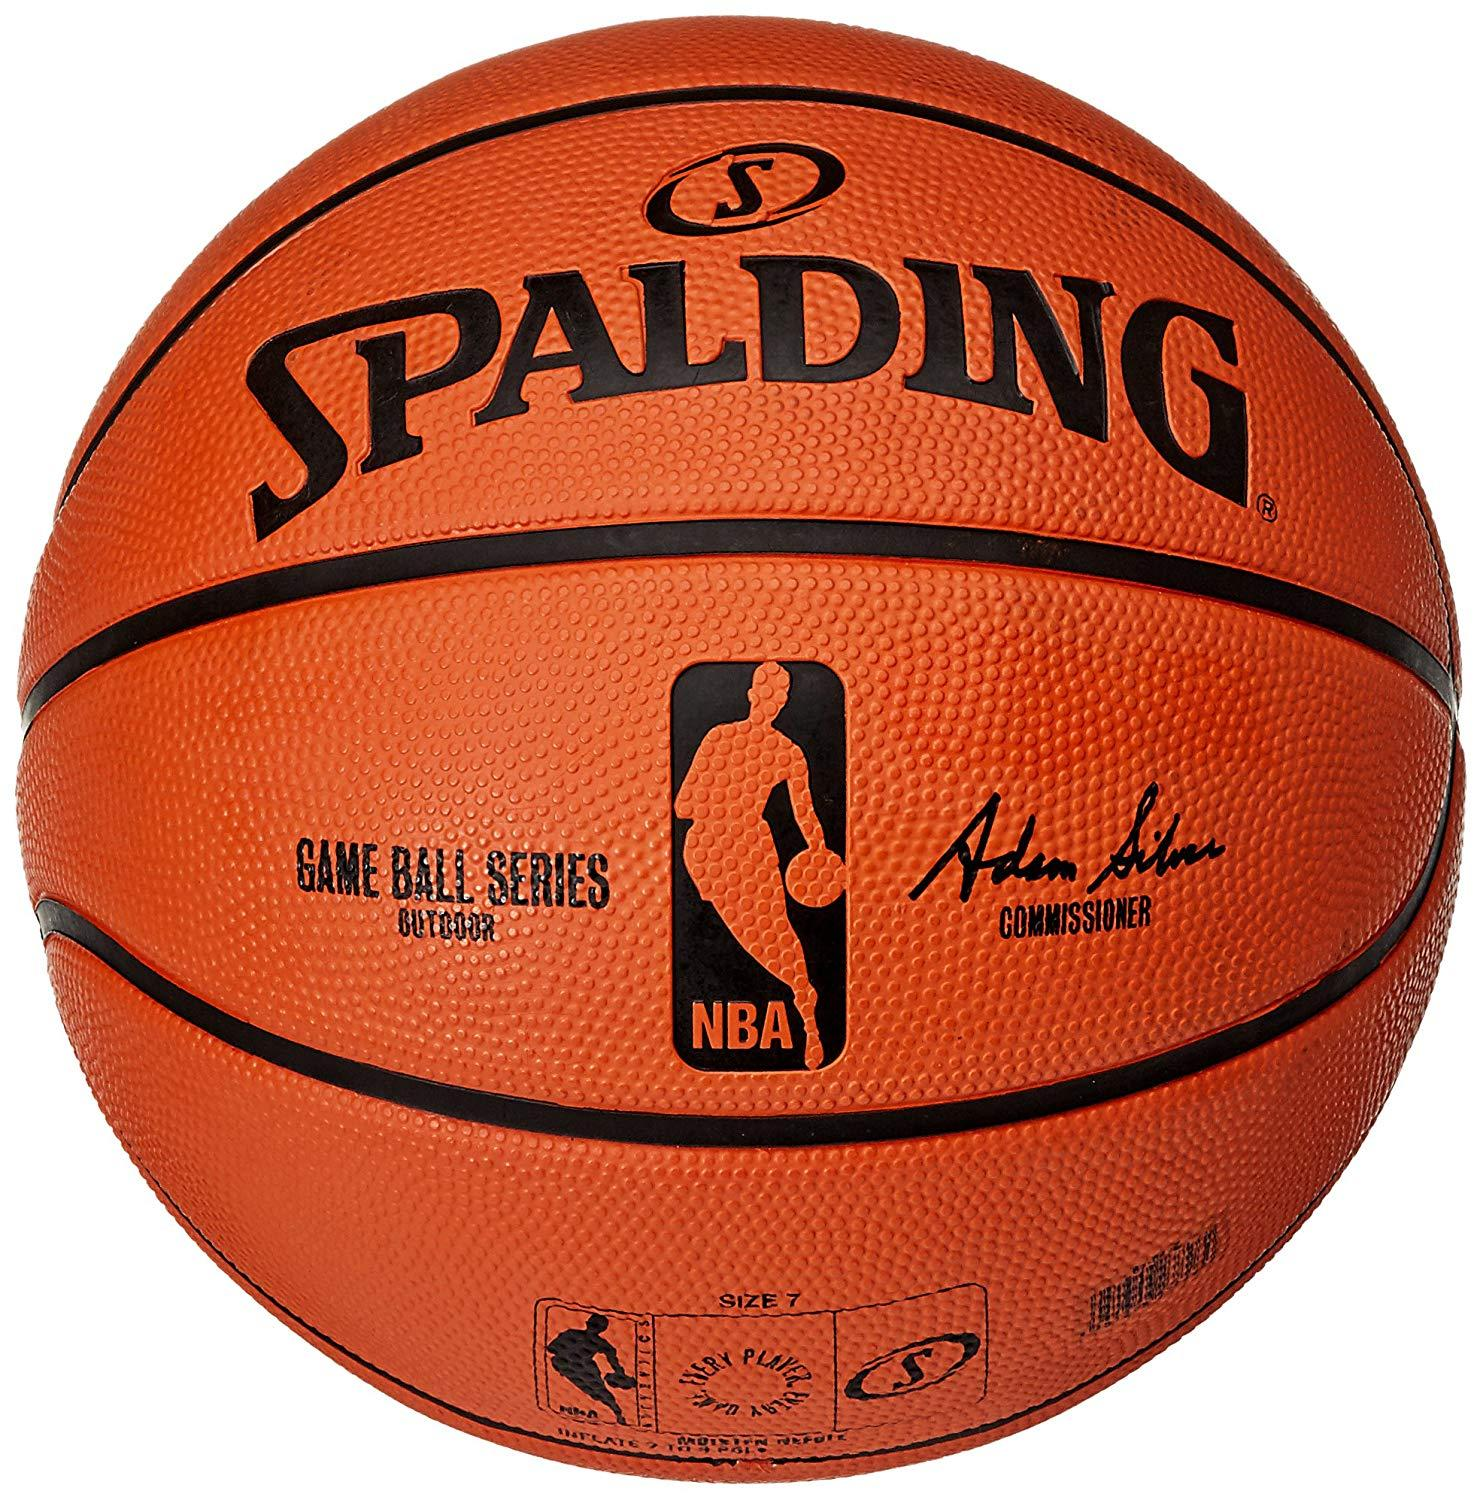 Spalding Basketball Philippines - Spalding Basketball Game for sale ... 6f7f338b11